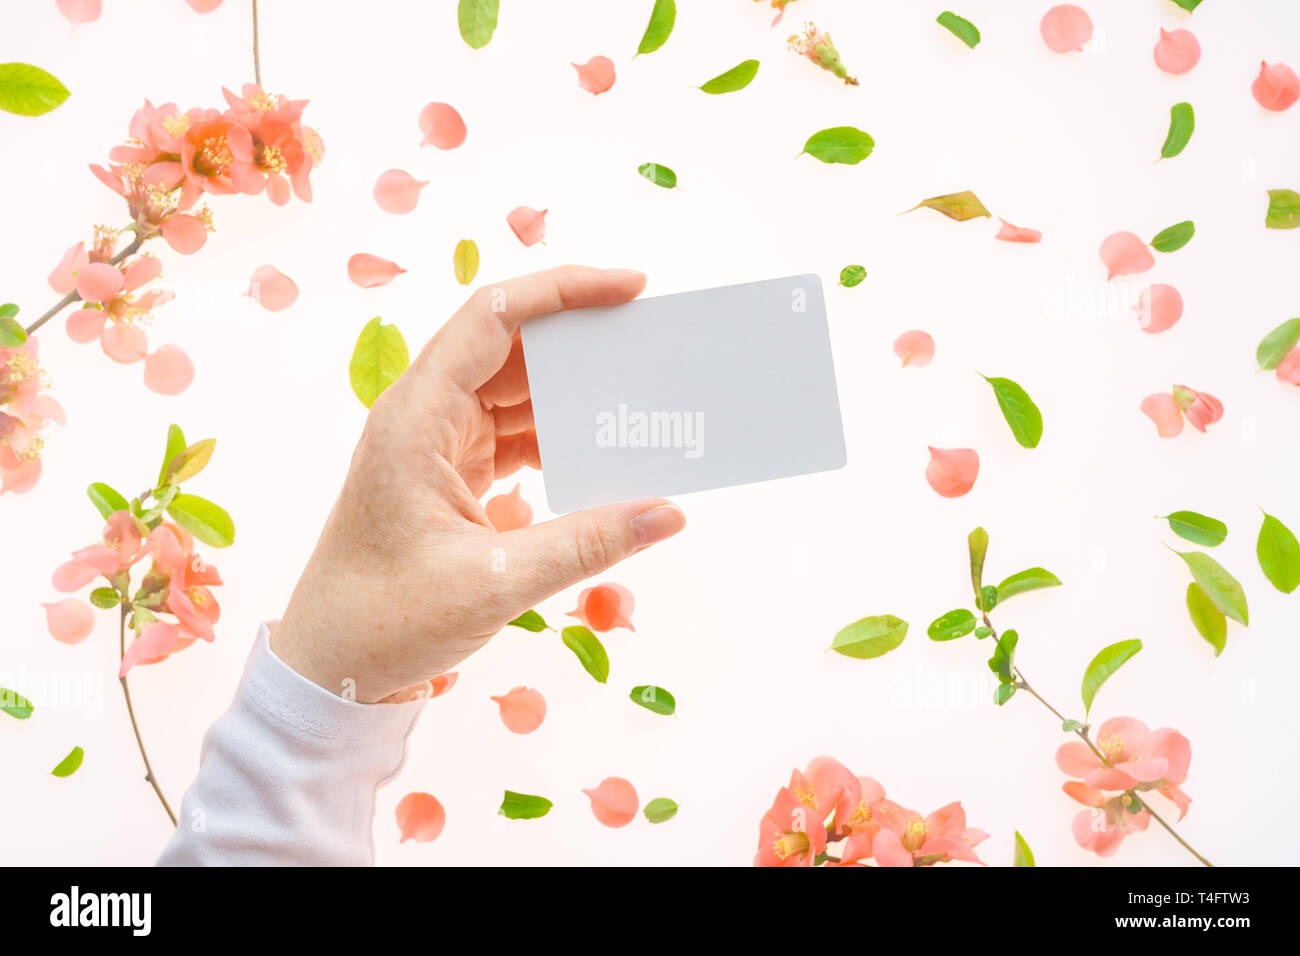 Woman holding blank white business card mock up in hand over white background with blooming springtime flower petals and leaves Stock Photo